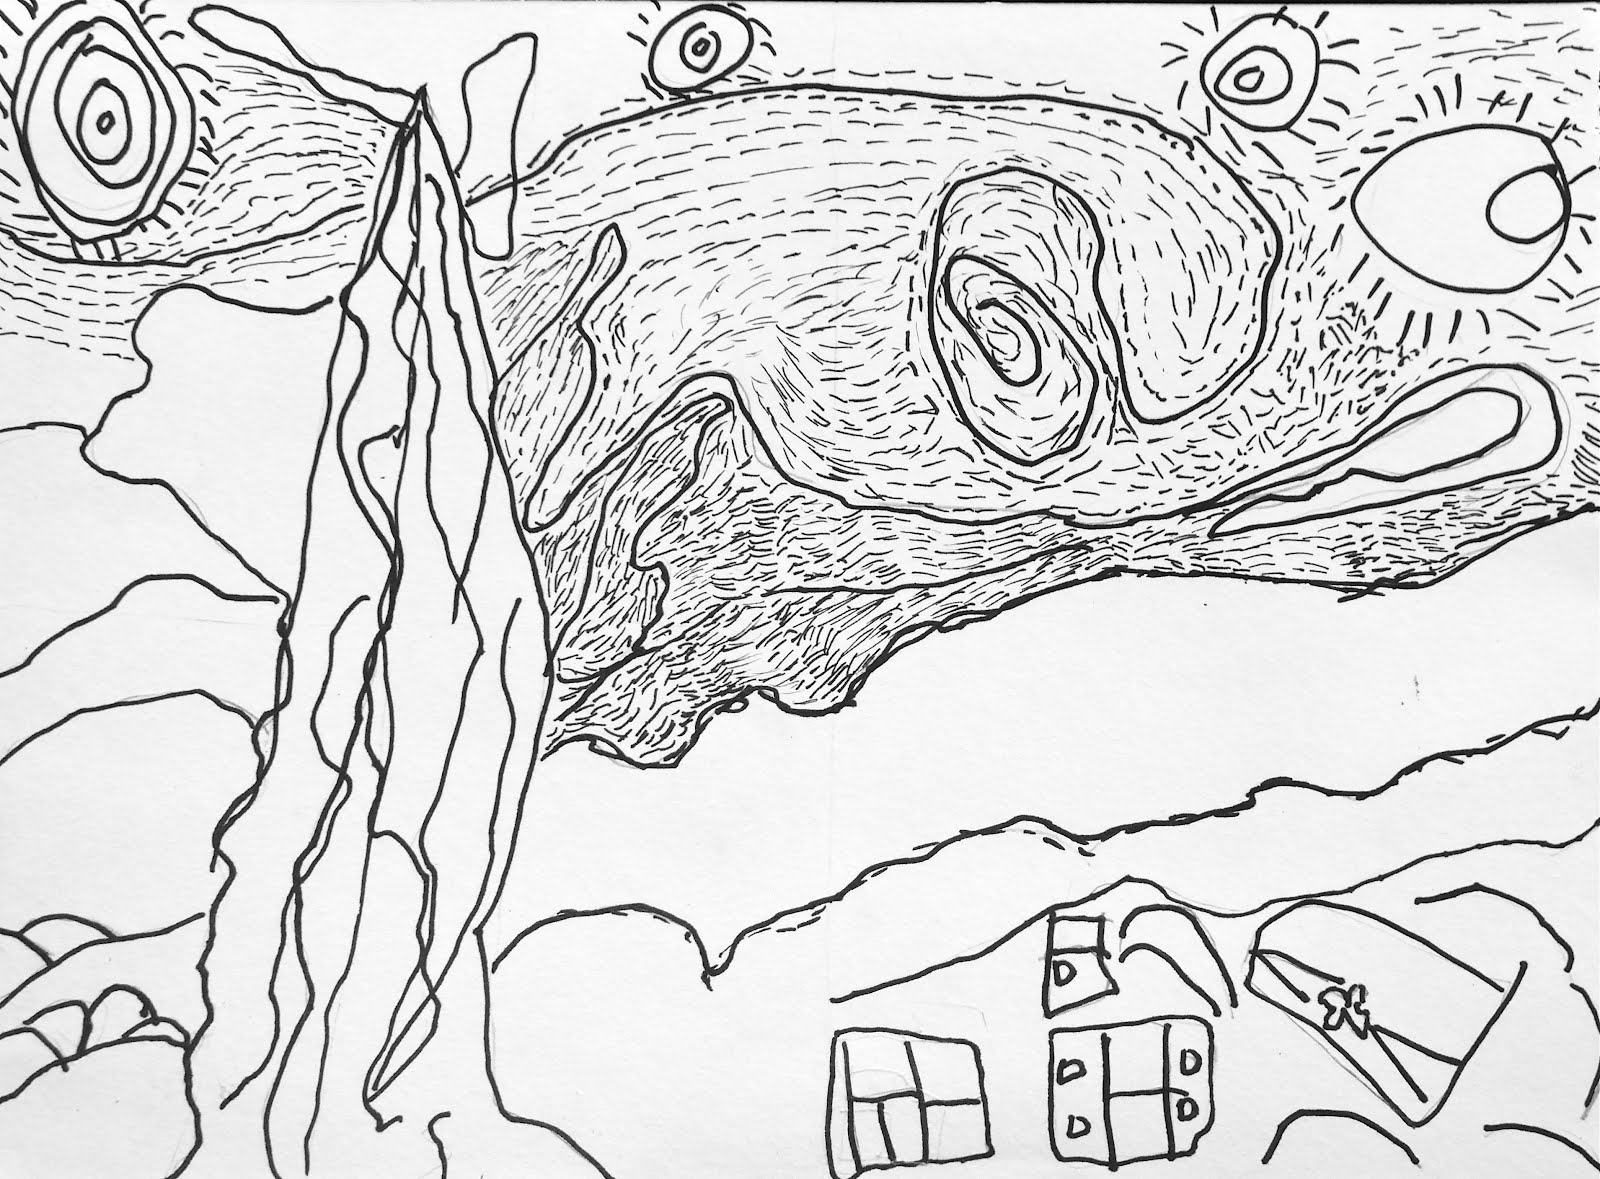 van gogh starry night coloring page - vincent van gogh starry night coloring page coloring pages